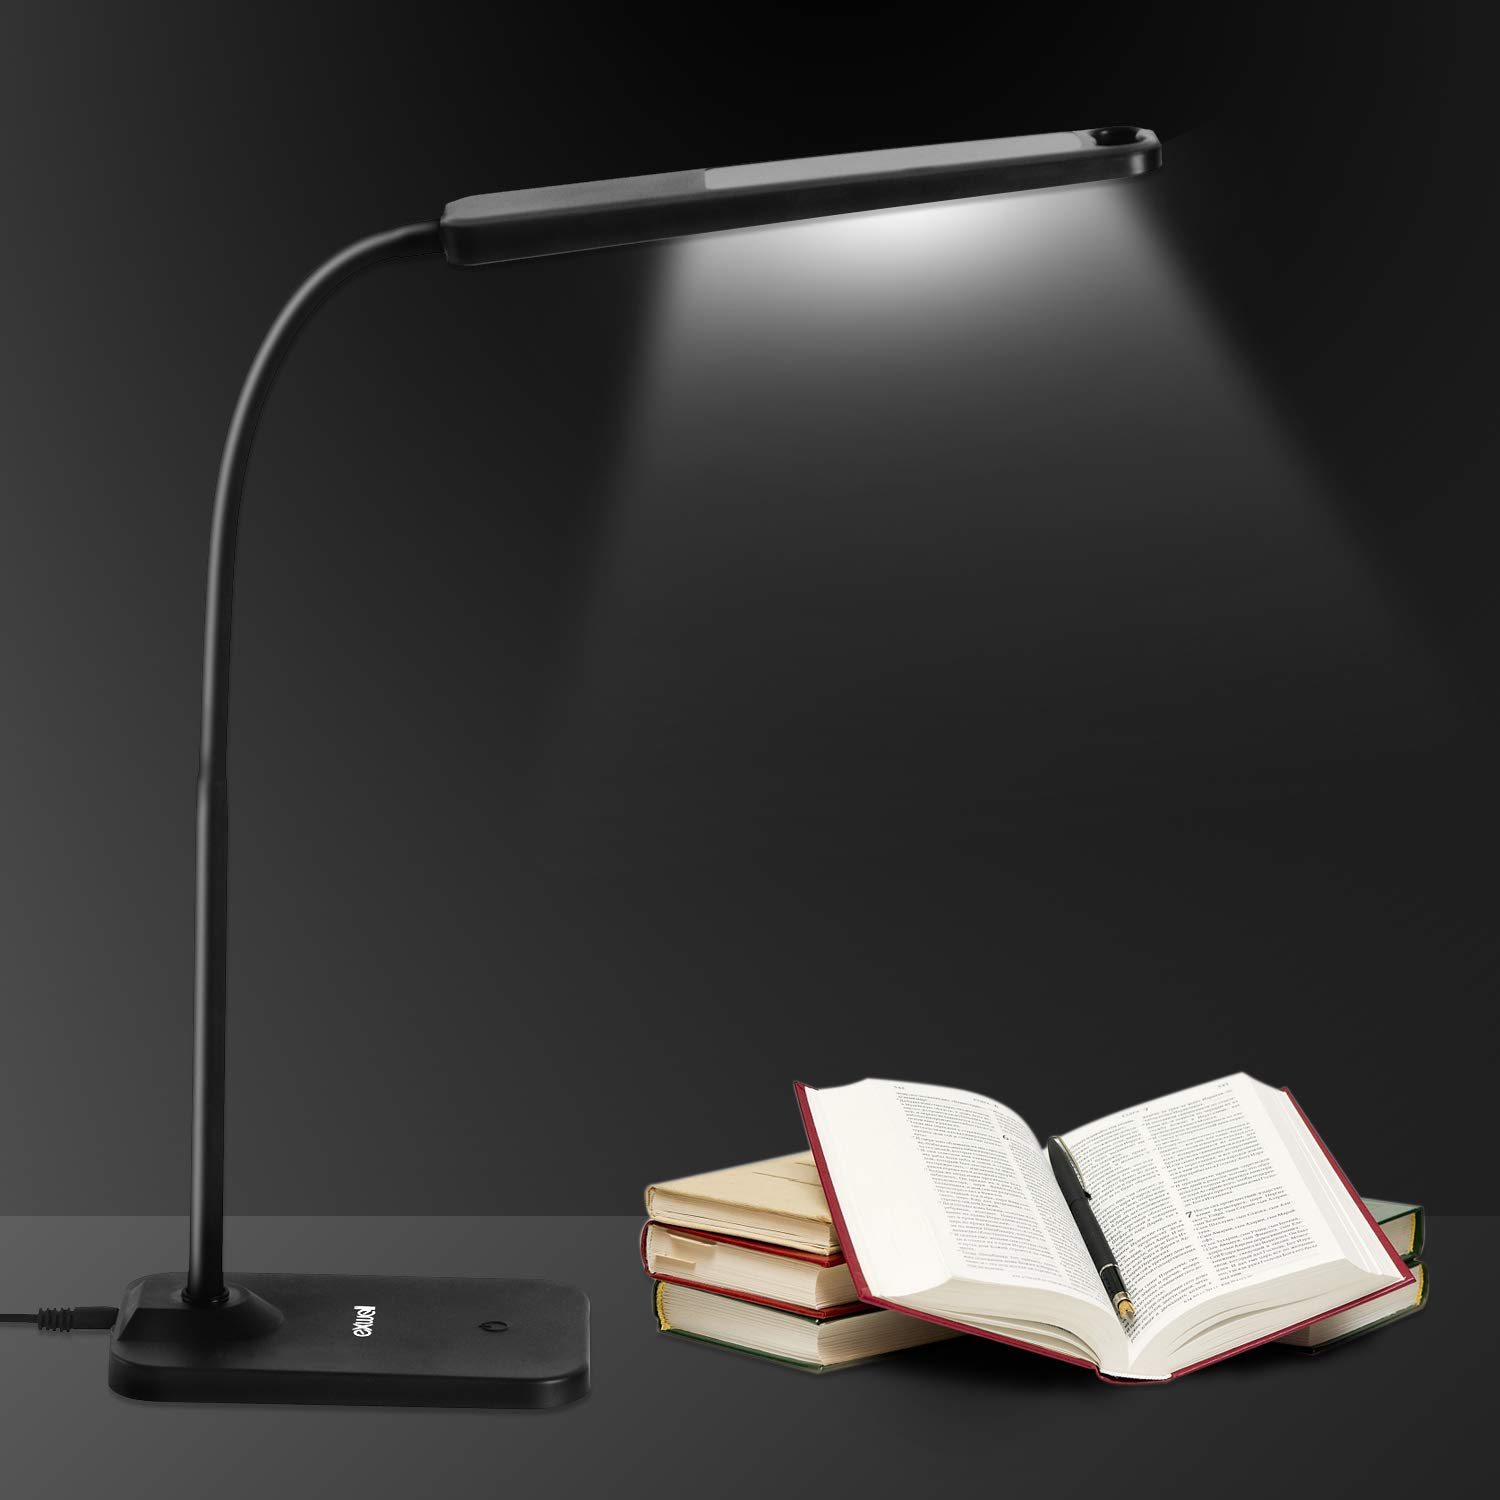 LED Desk Lamp,Exwell Study with USB Charging Port, Stepless Dimming Rechargeable Table Office Lamp, Touch Control Book Light with Flexible Neck